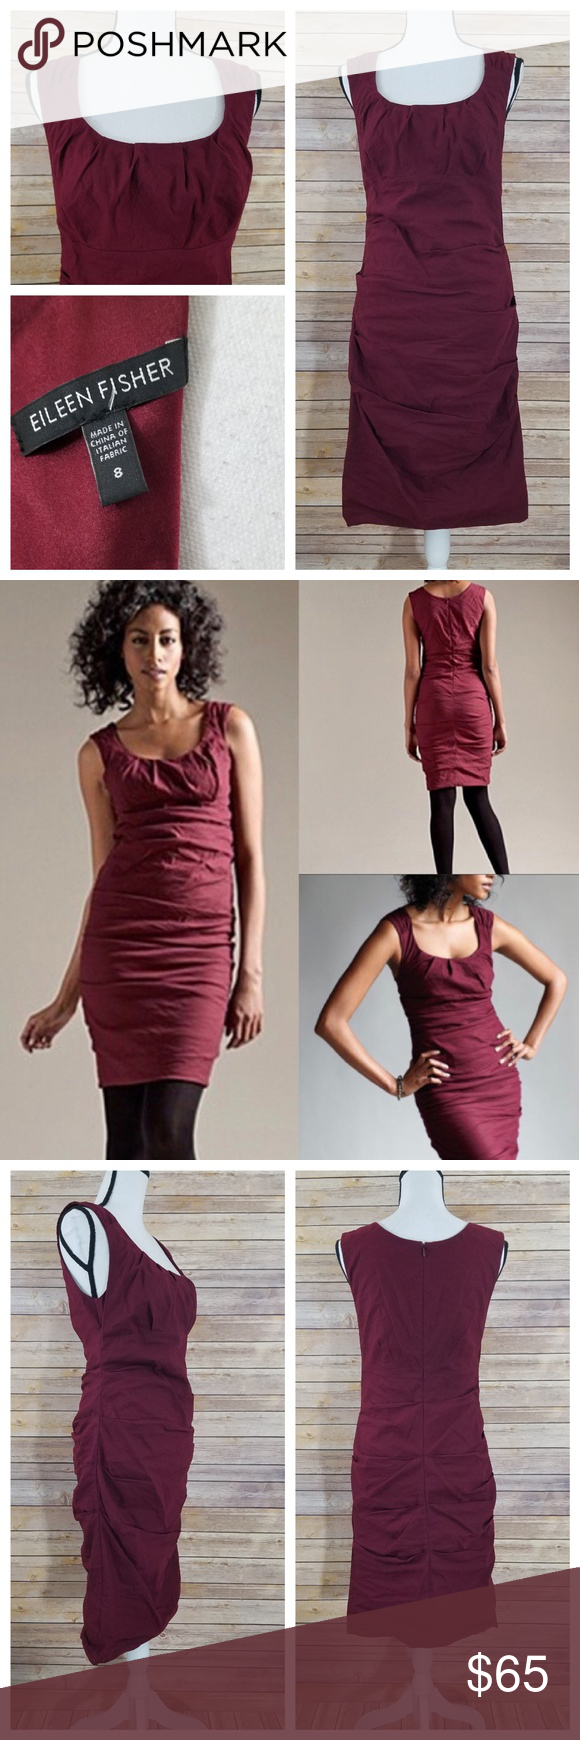 0e9d48b3a6 Eileen Fisher 8 Cranberry Ruched Bodycon Dress Eileen Fisher cranberry  ruched midi dress